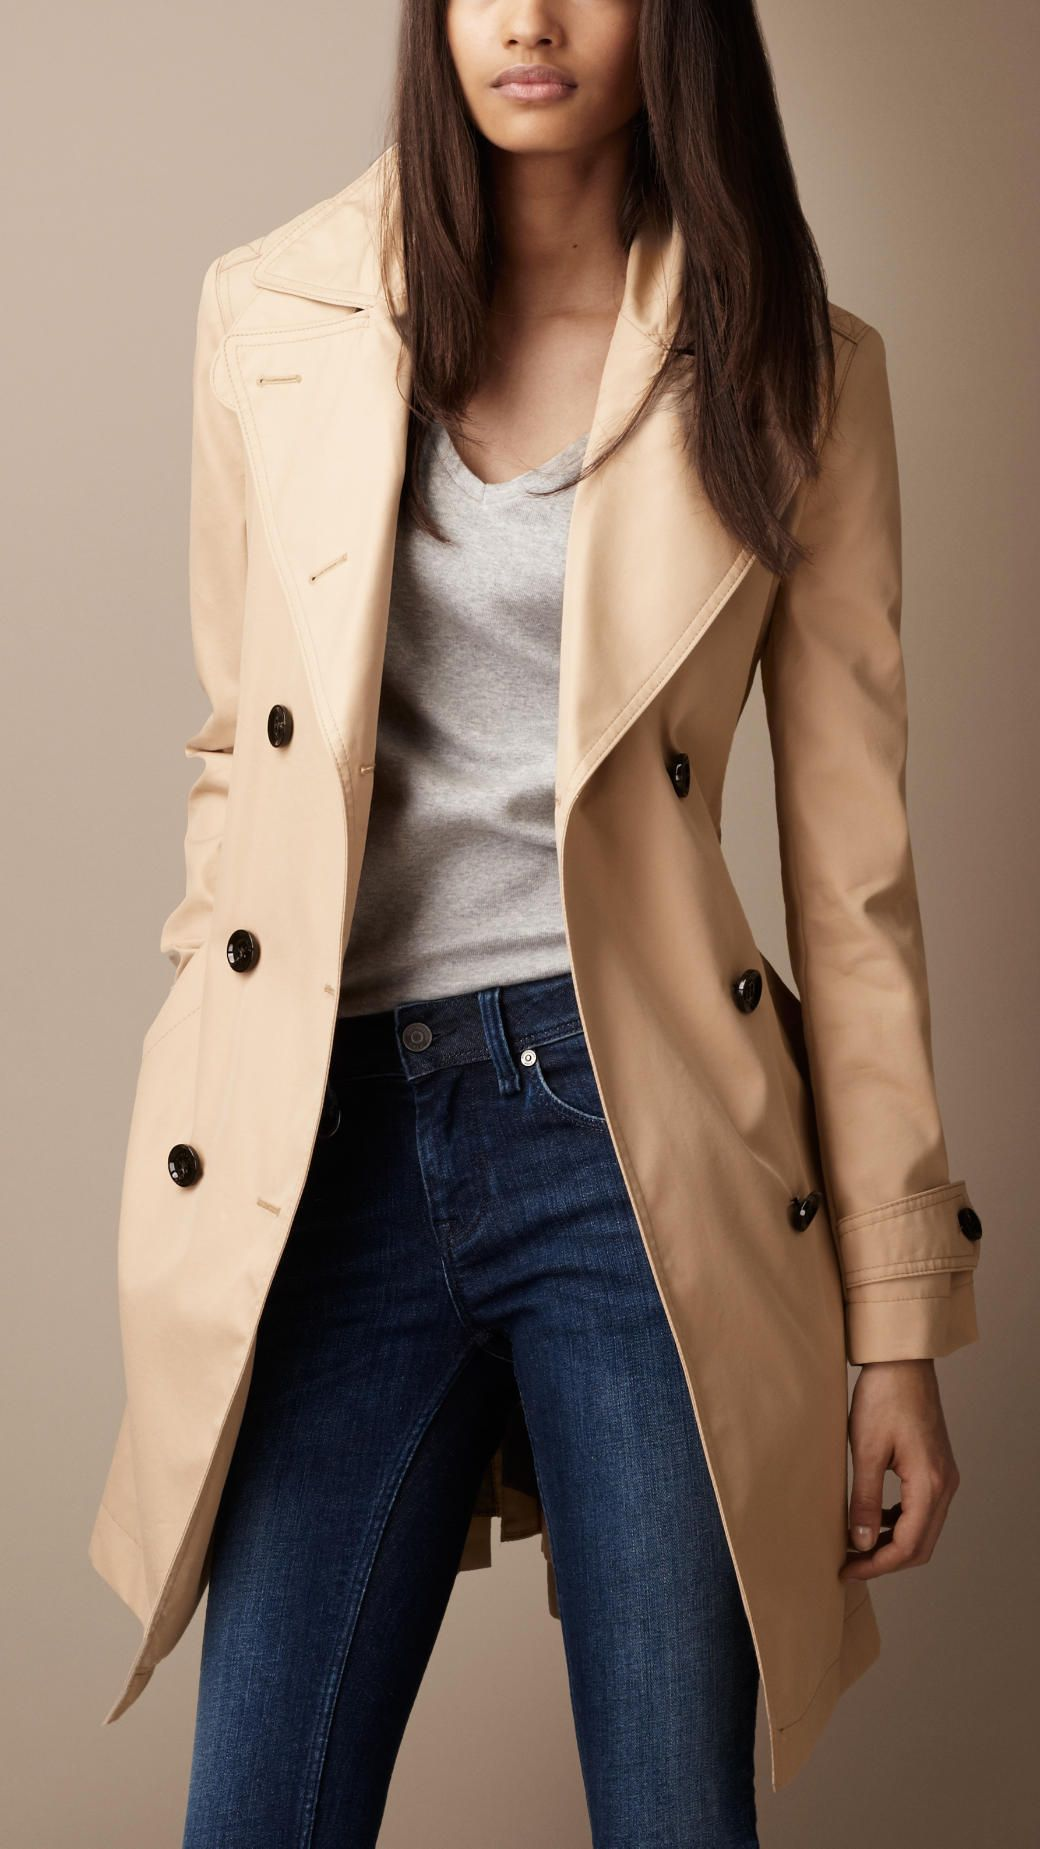 In FashionAutumn Style 2019 Trench CoatsBurberry qcRjL34A5